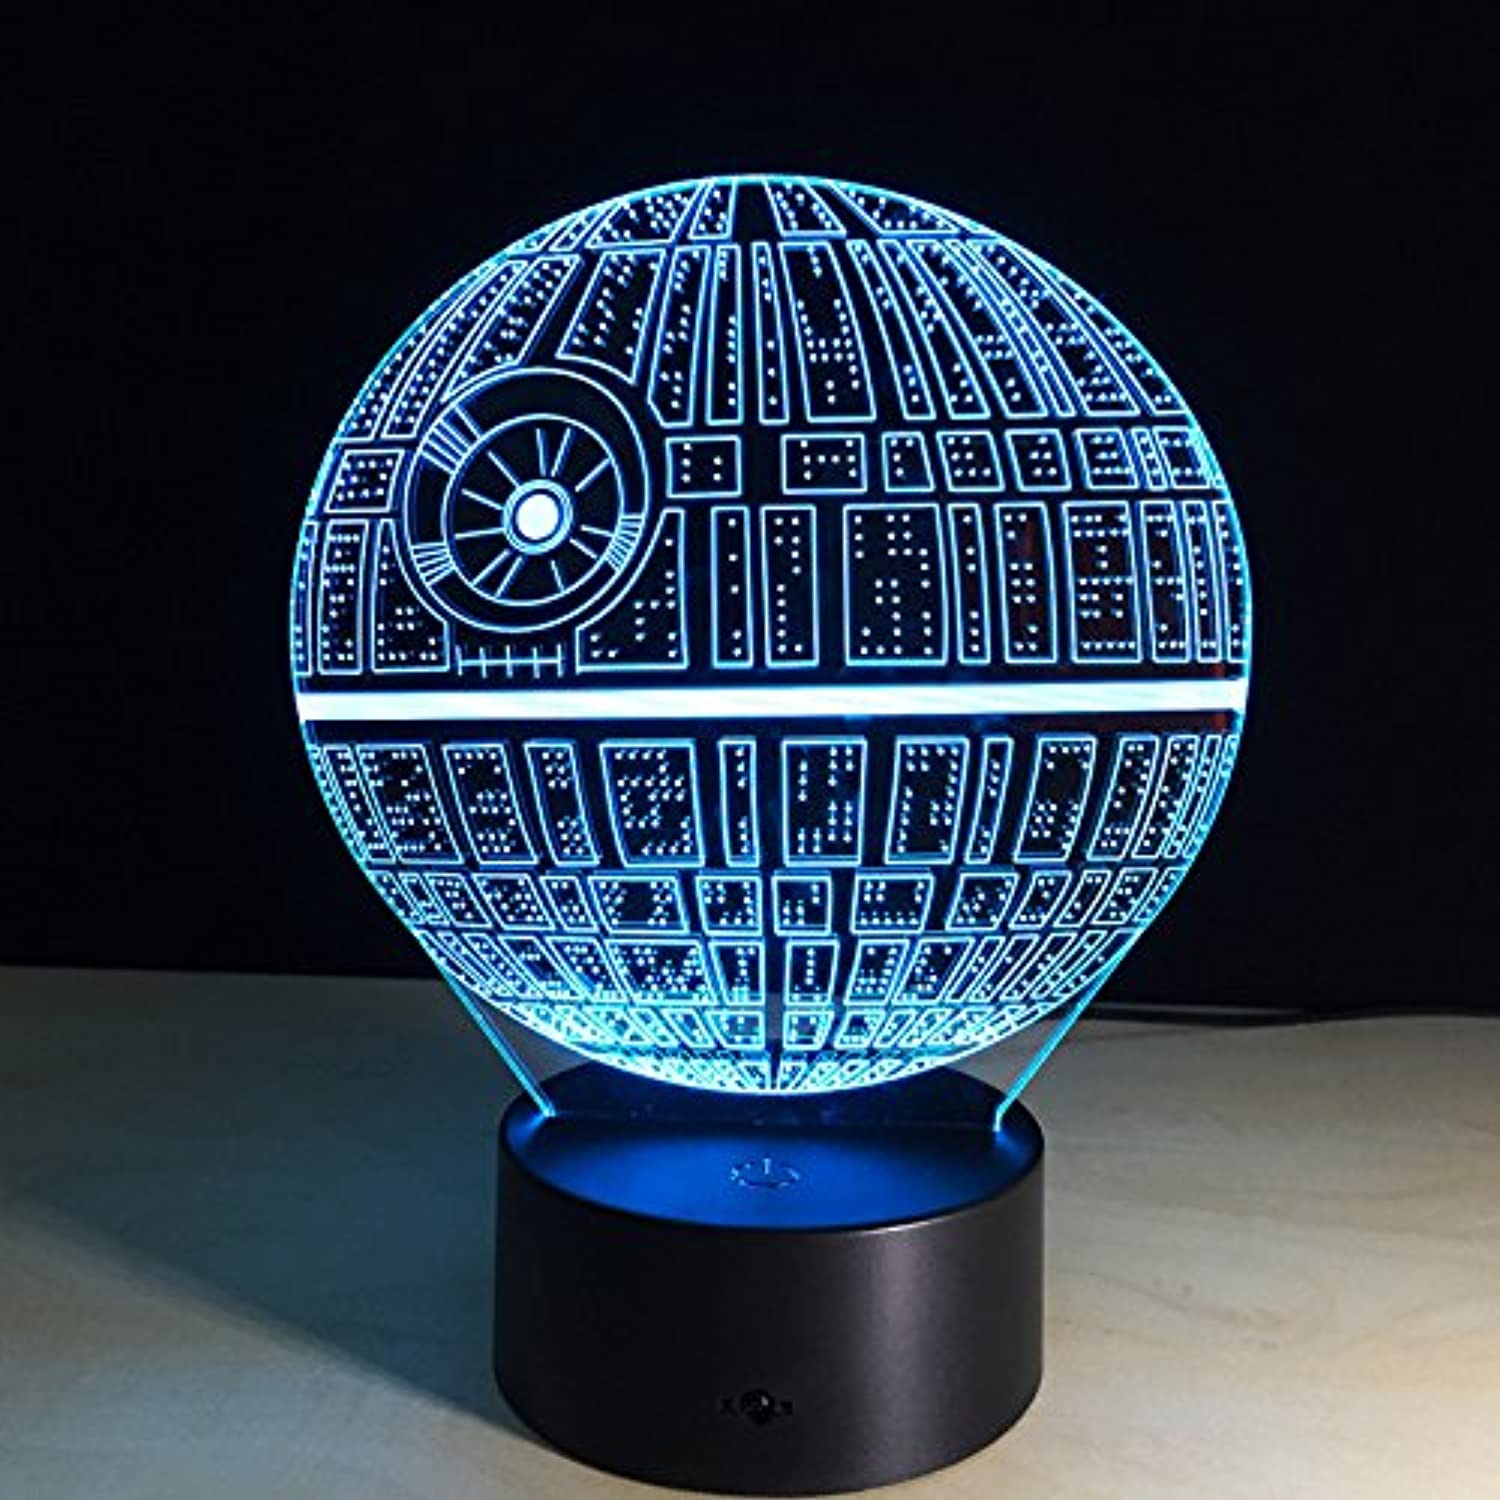 Y′s 3D DS-1(DS-1 Orbital Battle Station) Night Light Lamp